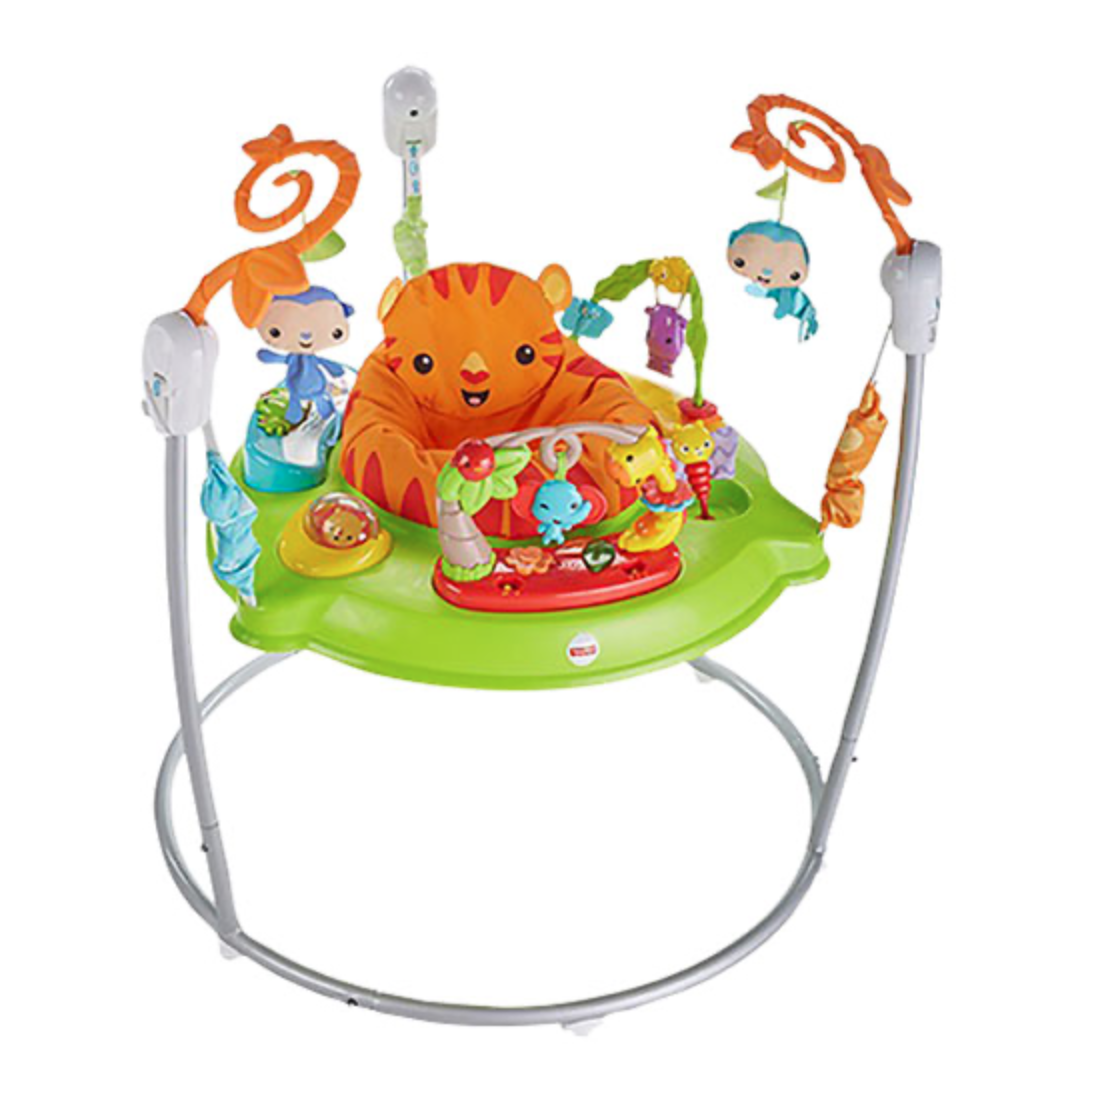 Fisher Price Jumparoo - babies and toddlers